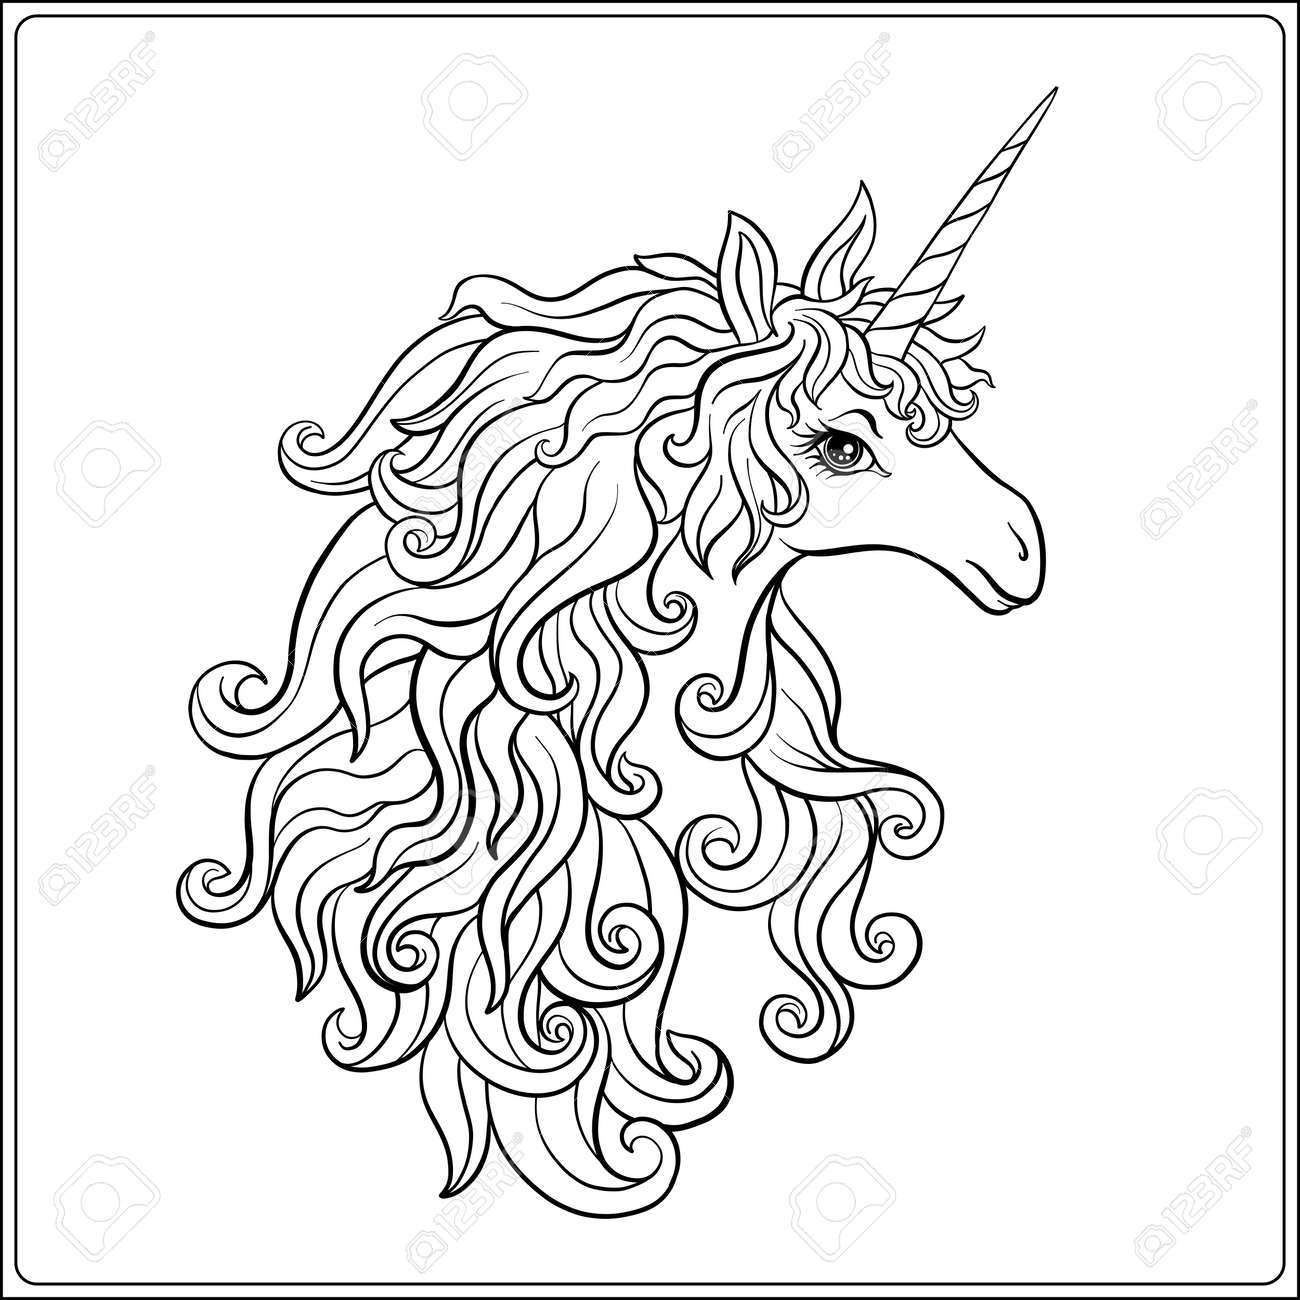 - Unicorn. Outline Drawing Coloring Page. Coloring Book For Adult